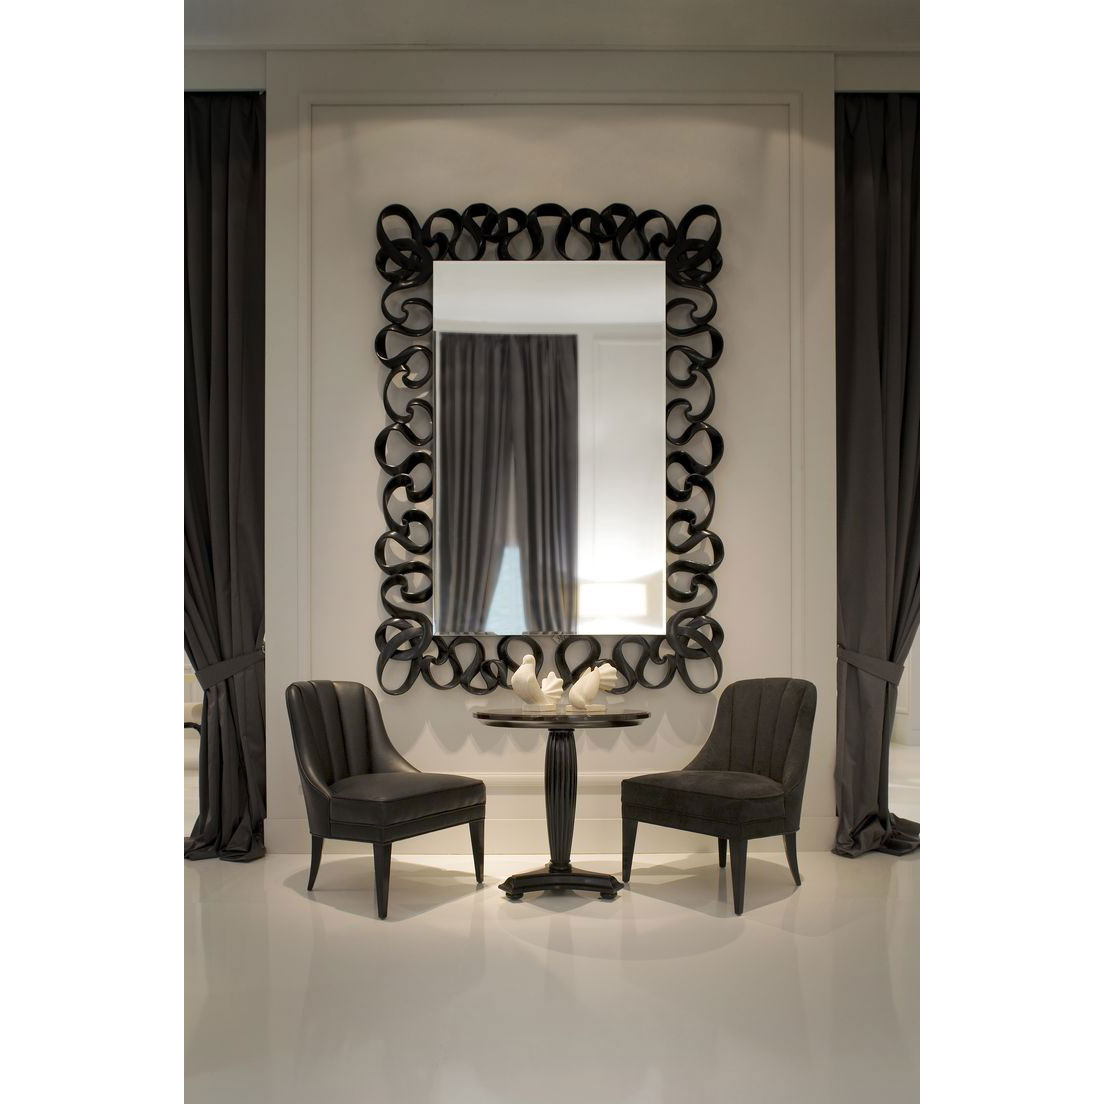 Grand miroir mural design dahlia idkrea collection rennes for Grand miroir mural